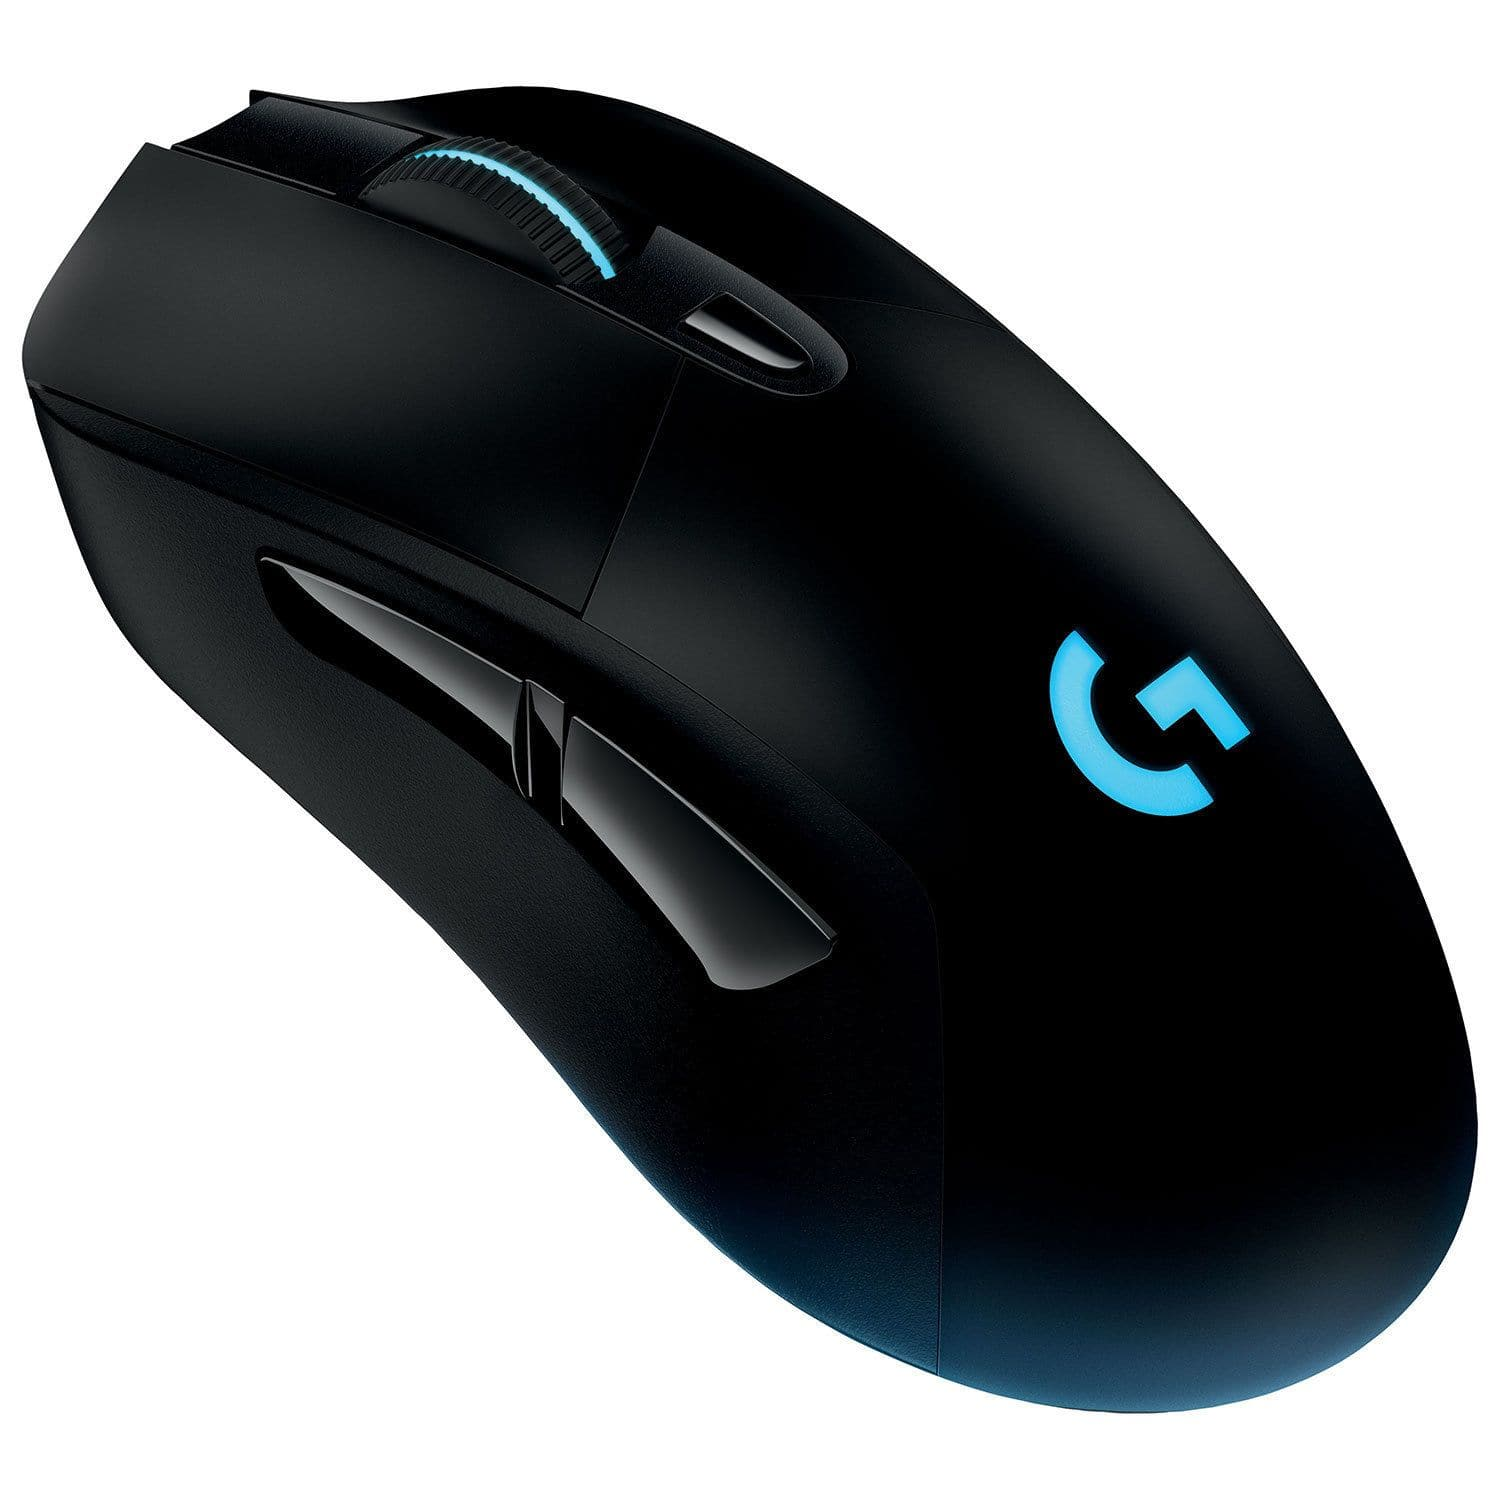 Logitech G703 12000DPI Wireless Optical Gaming Mouse - Black